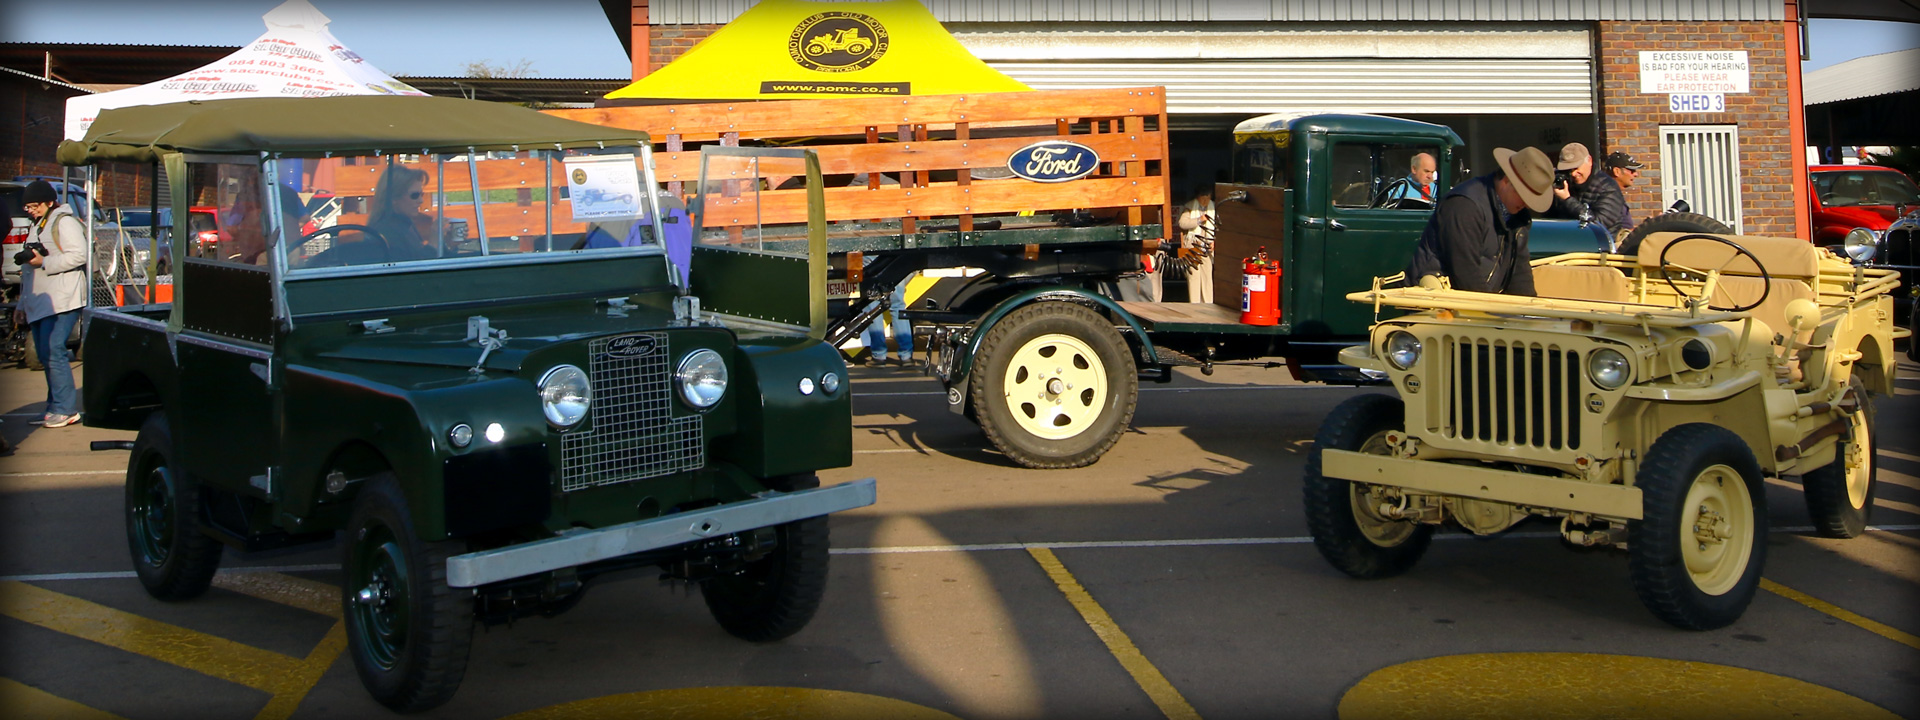 Pretoria Old Motor Club Celebrates its Half Century at this year's Cars in the Park